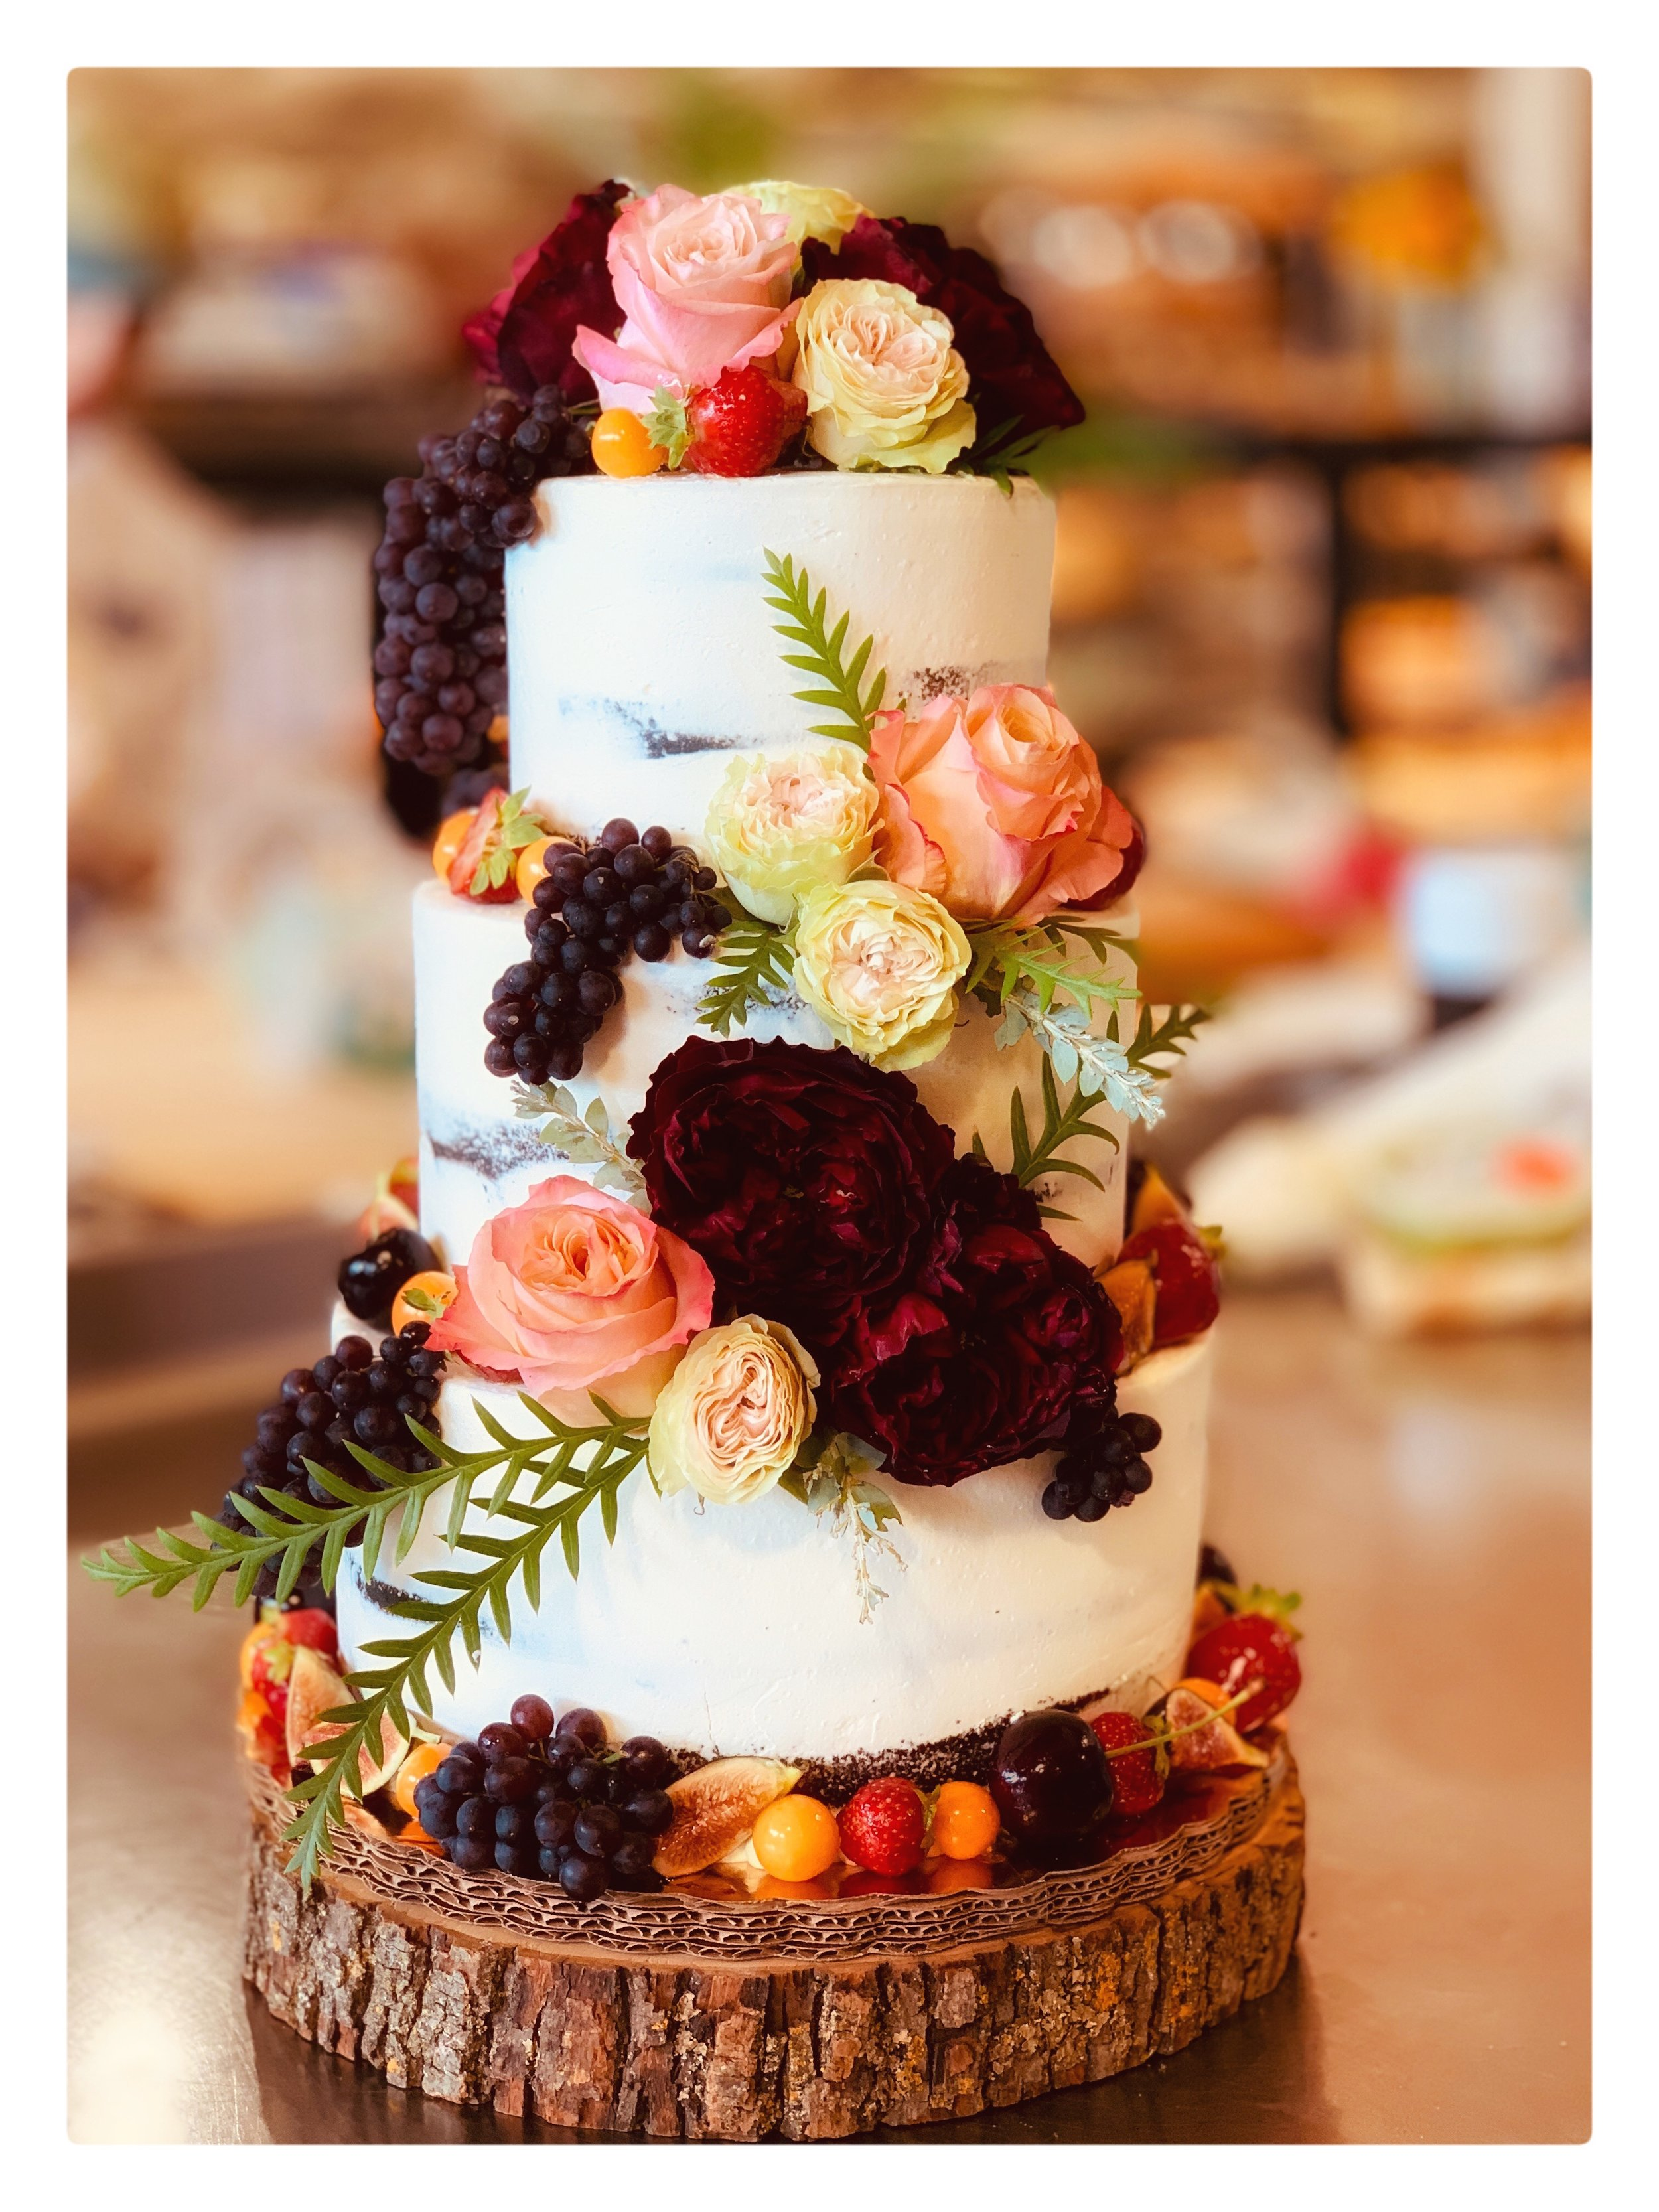 Wedding cake made with fresh fruit and flowers.